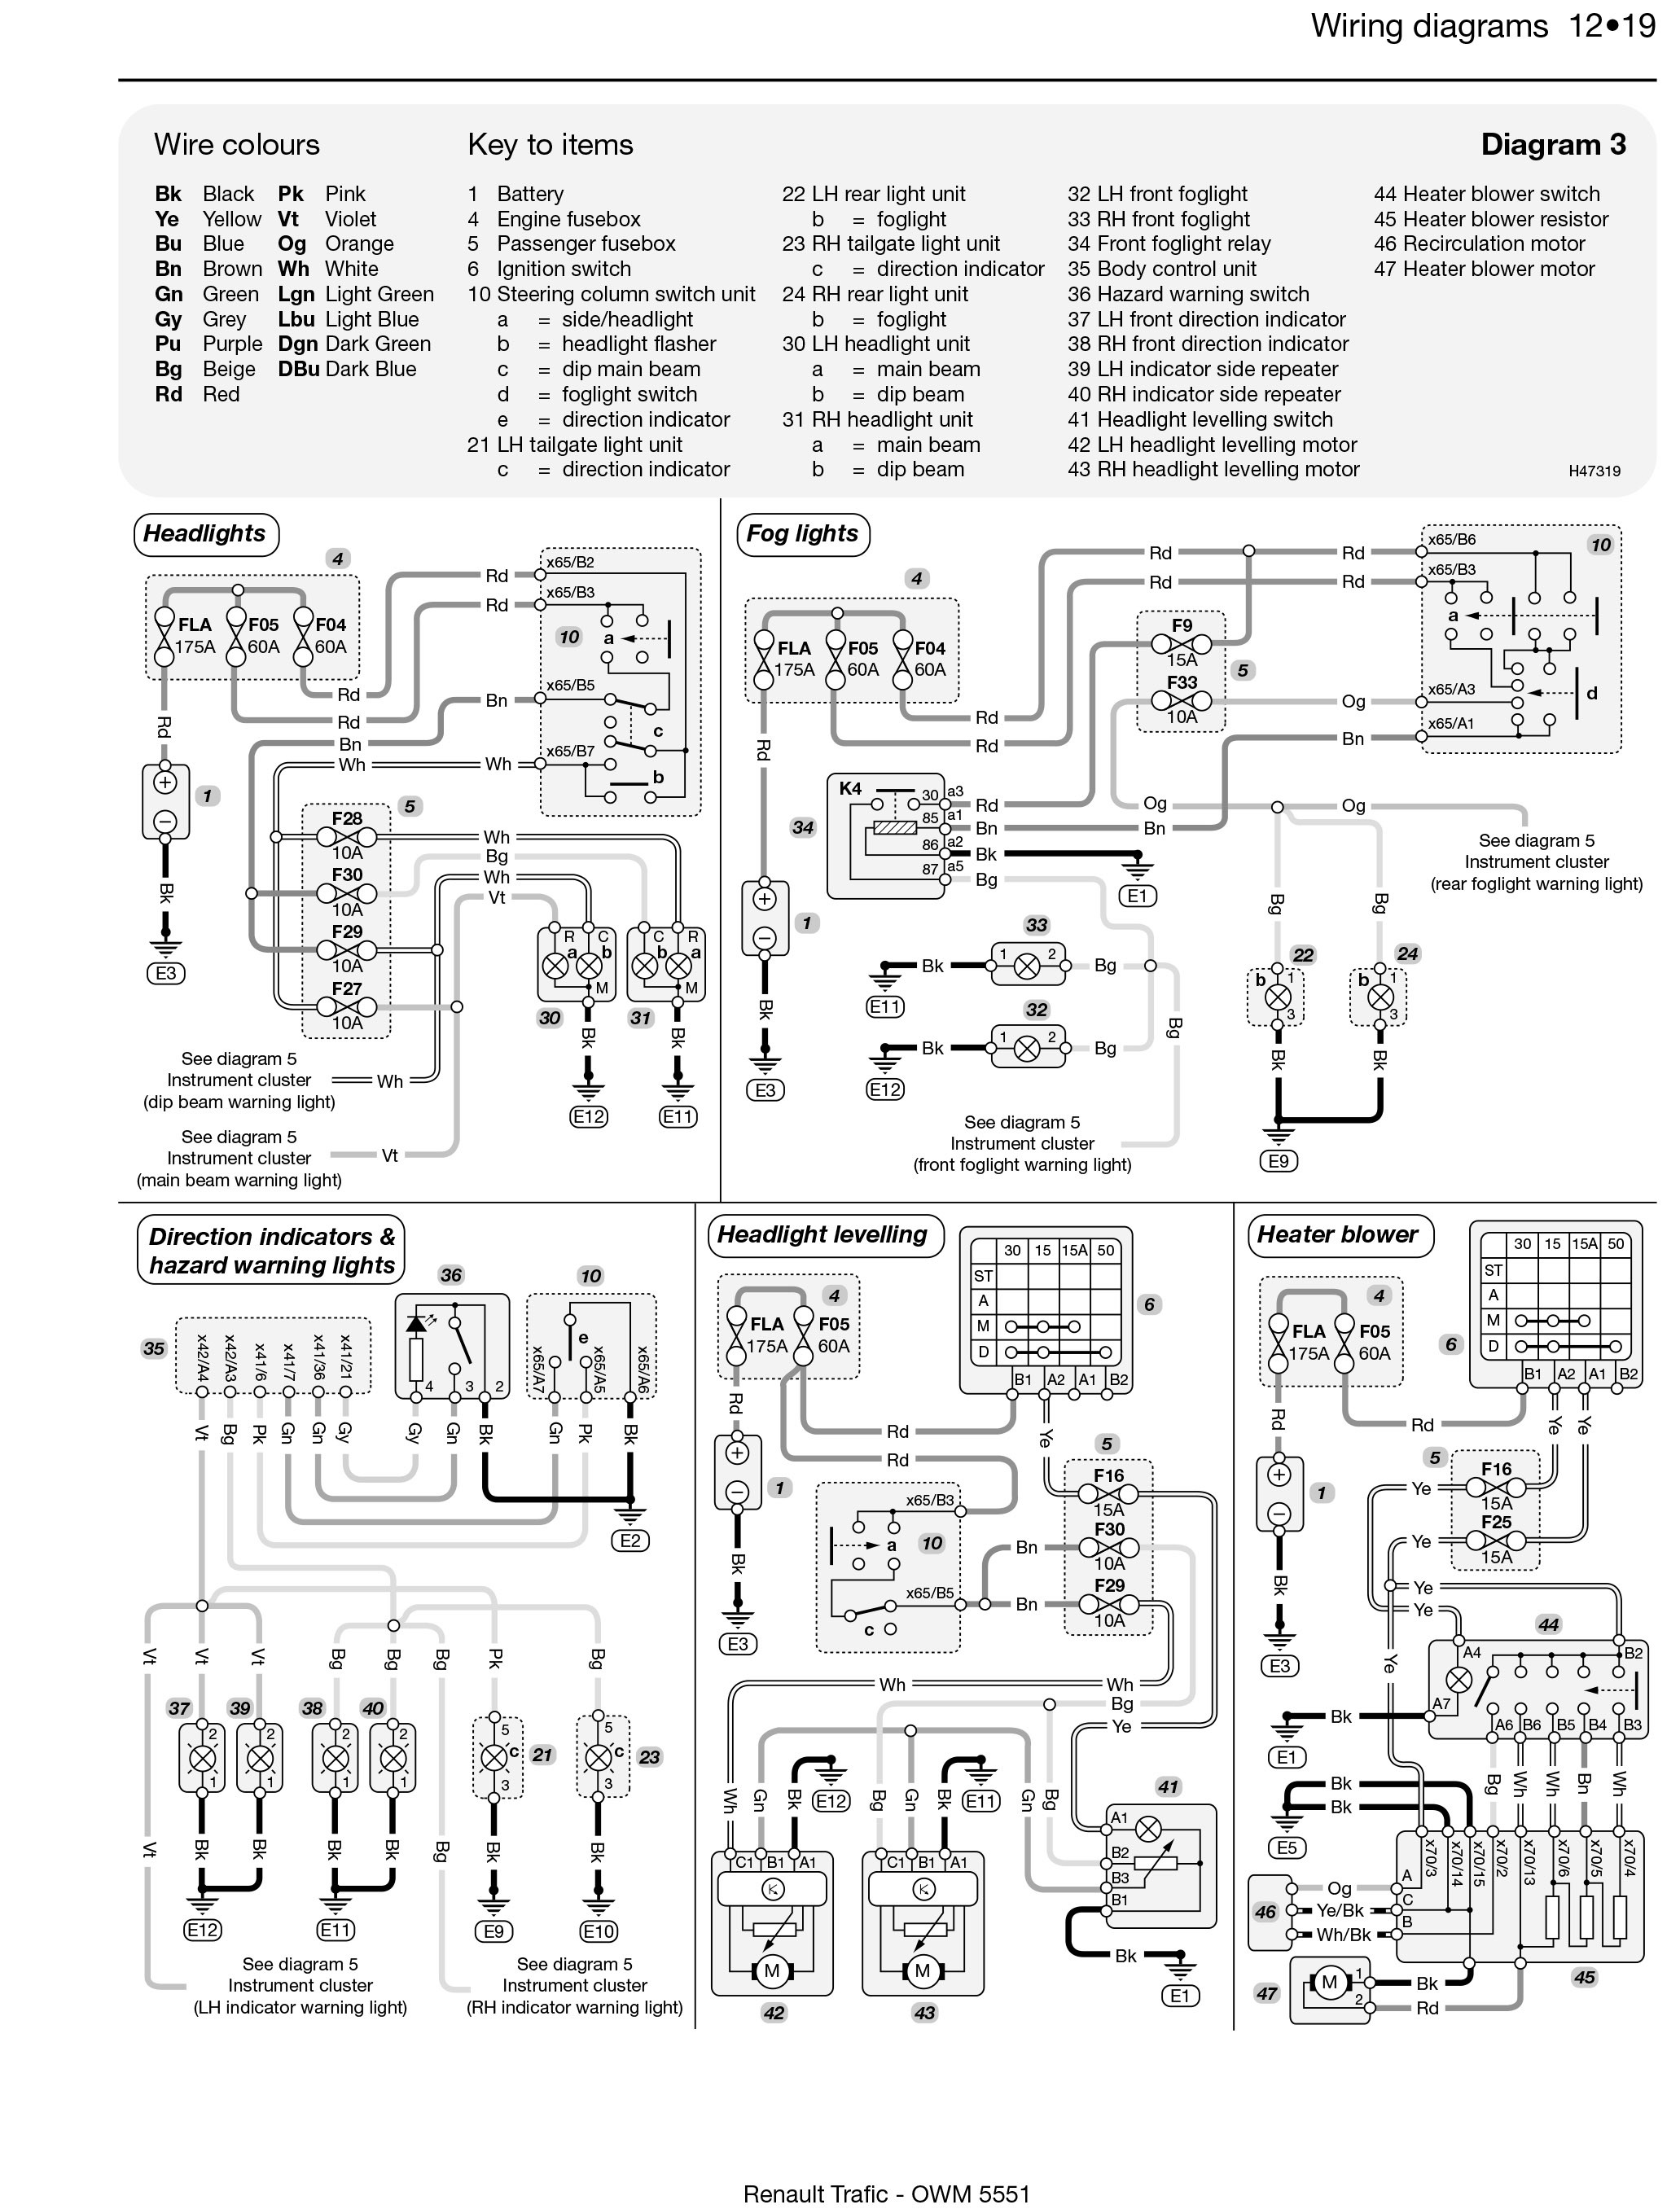 Renault Trafic 2004 Fuse Box Diagram Trusted Wiring Transmission Diagrams U2022 Window Switch